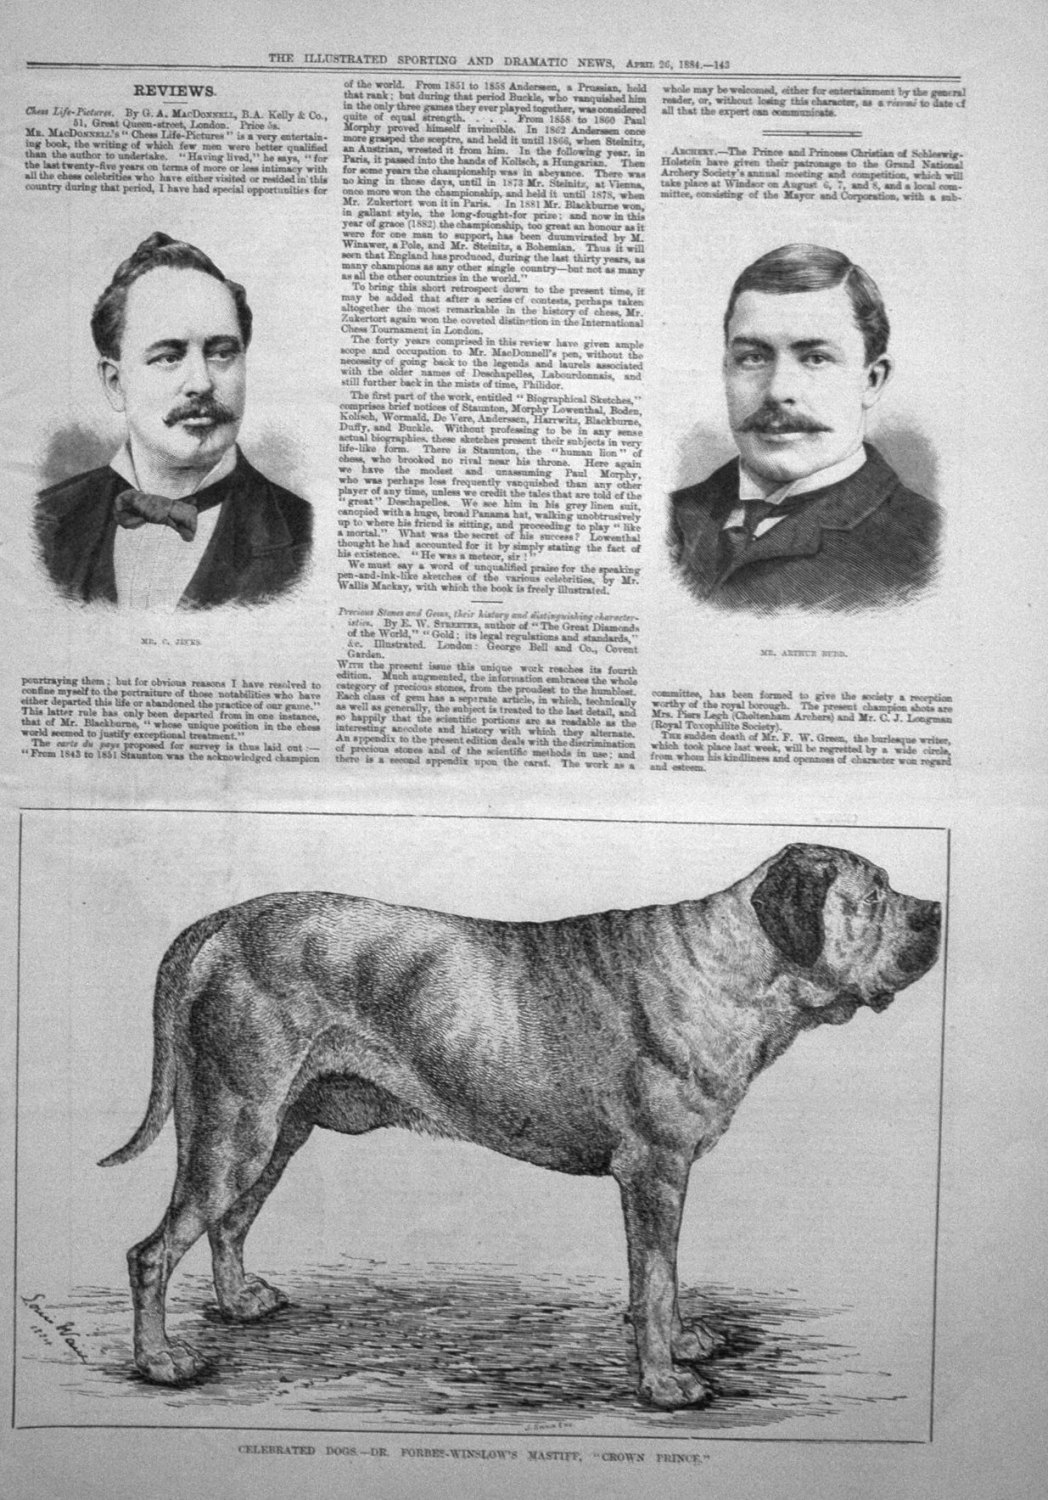 Celebrated Dogs. -Dr. Forbes-Winslow's Mastiff,